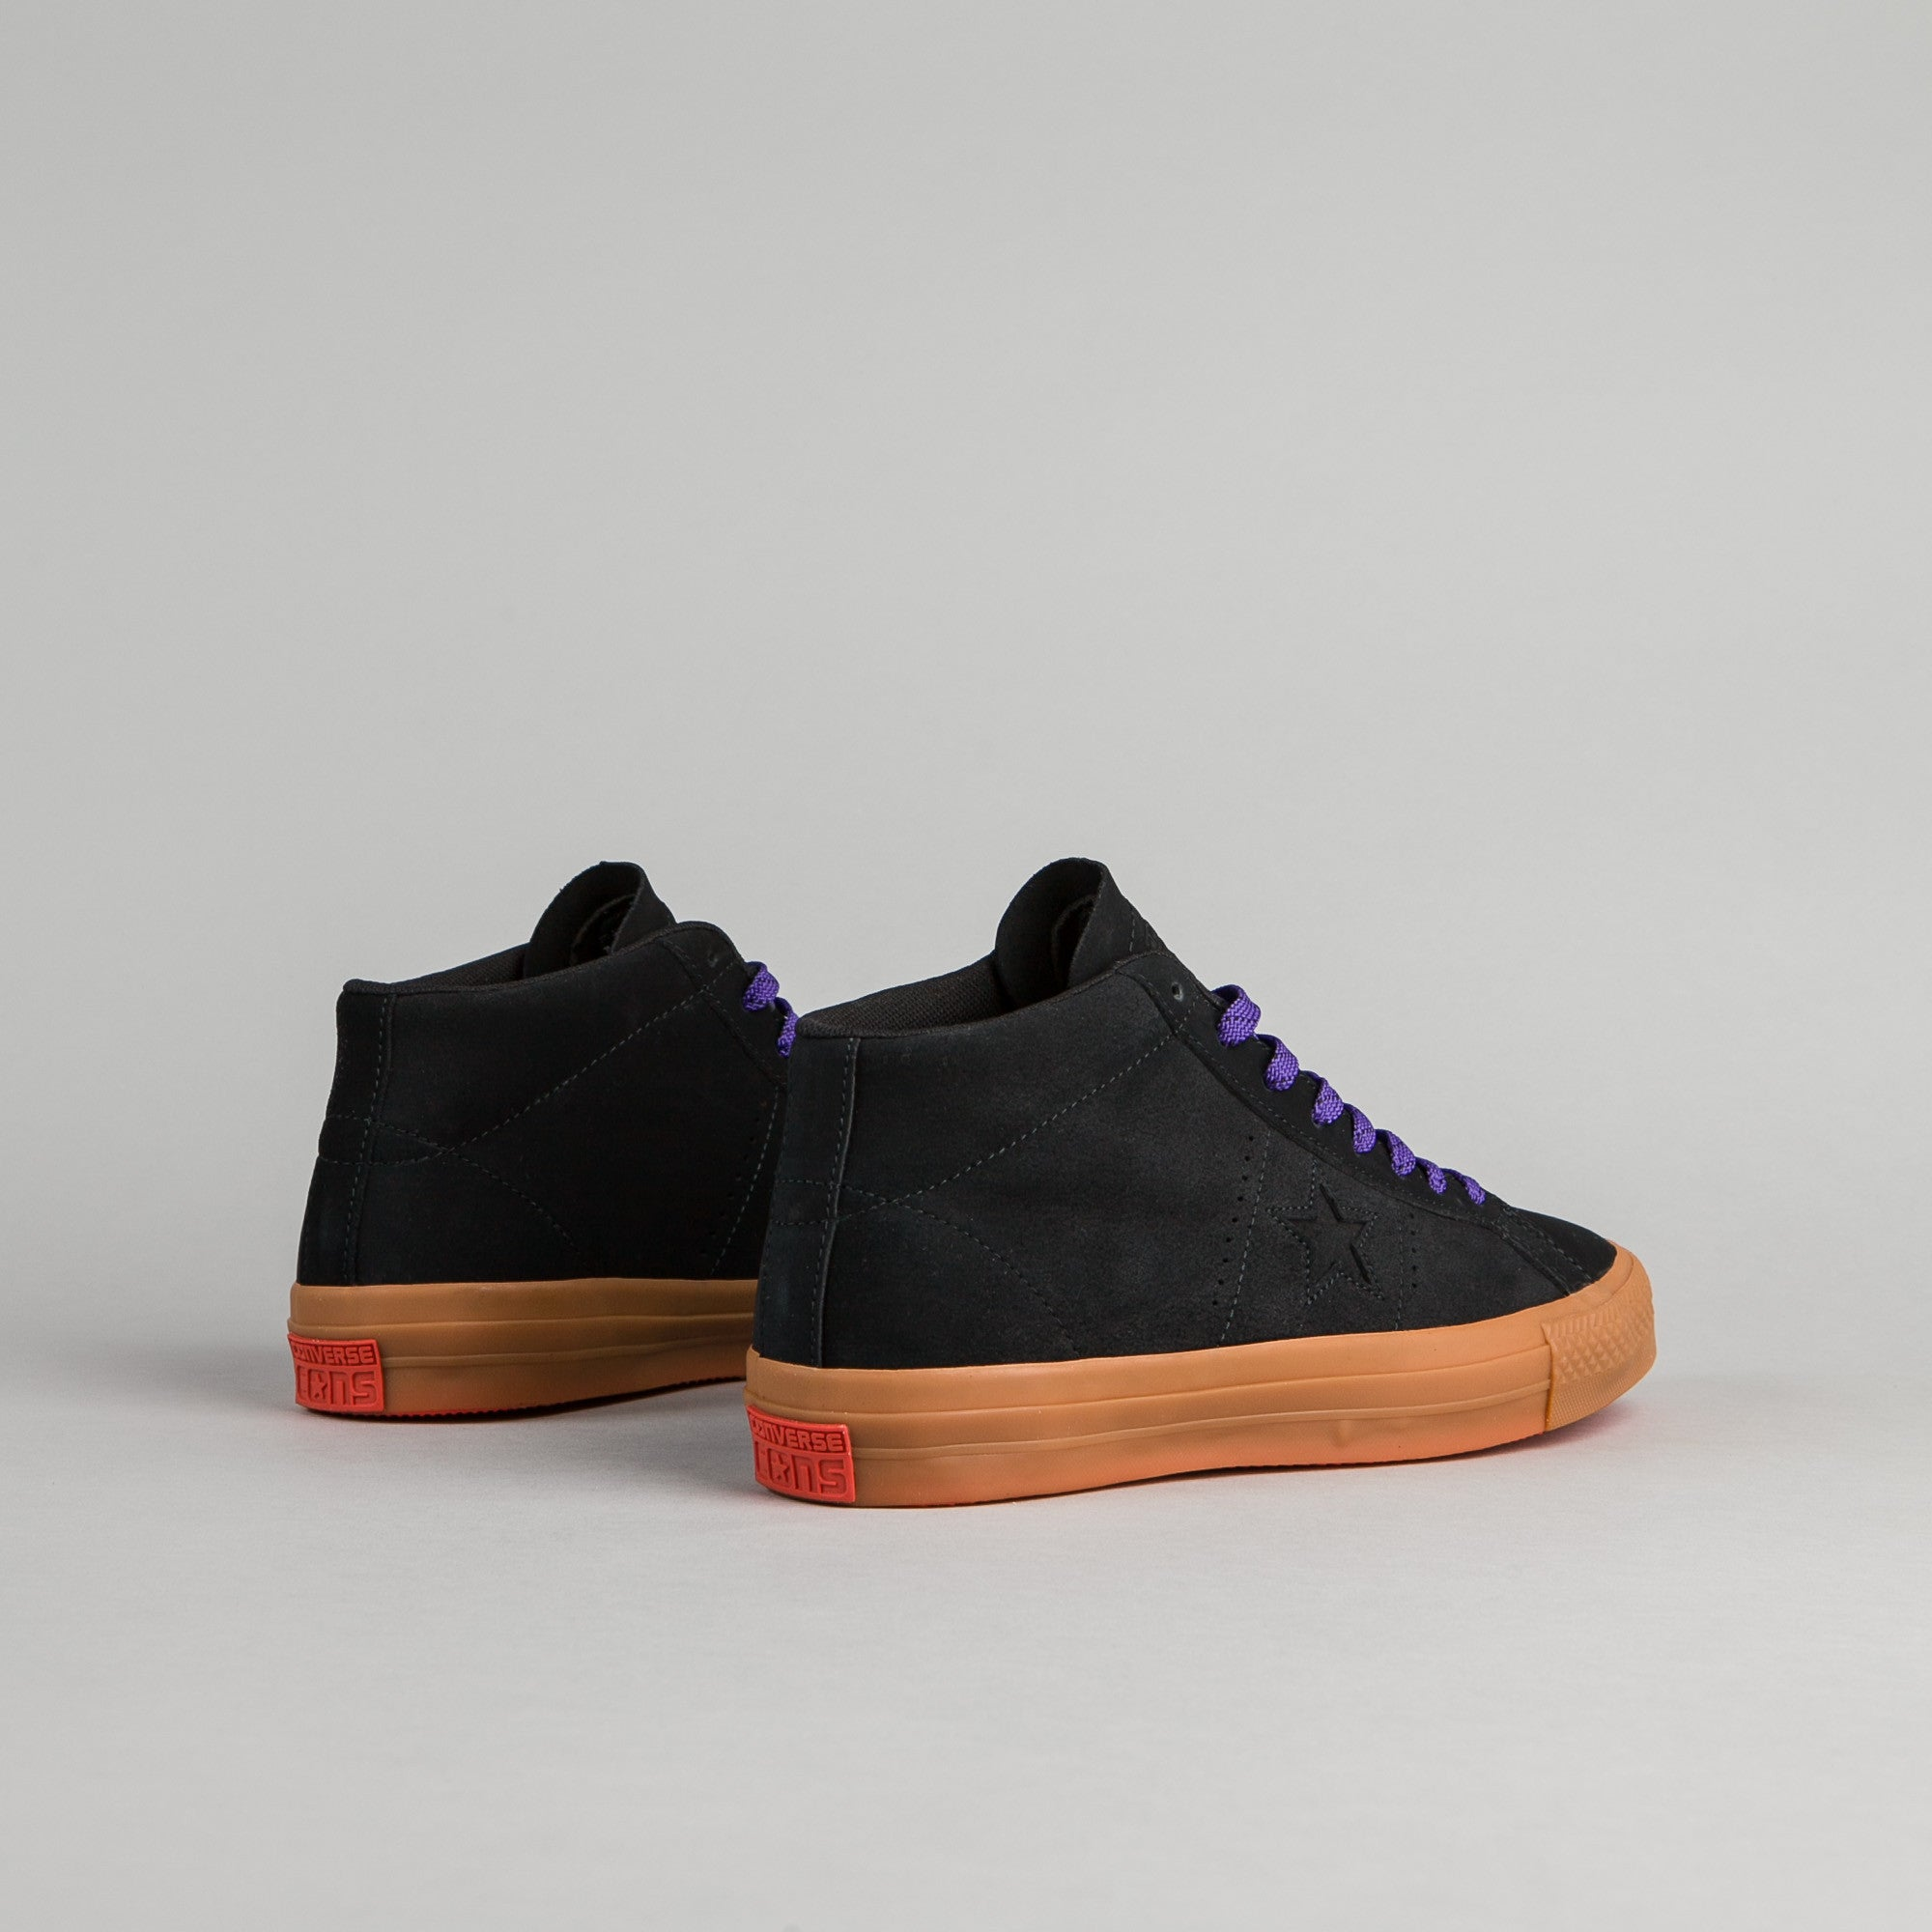 Converse One Star Pro Leather Mid Shoes - Black / Gum / Grape